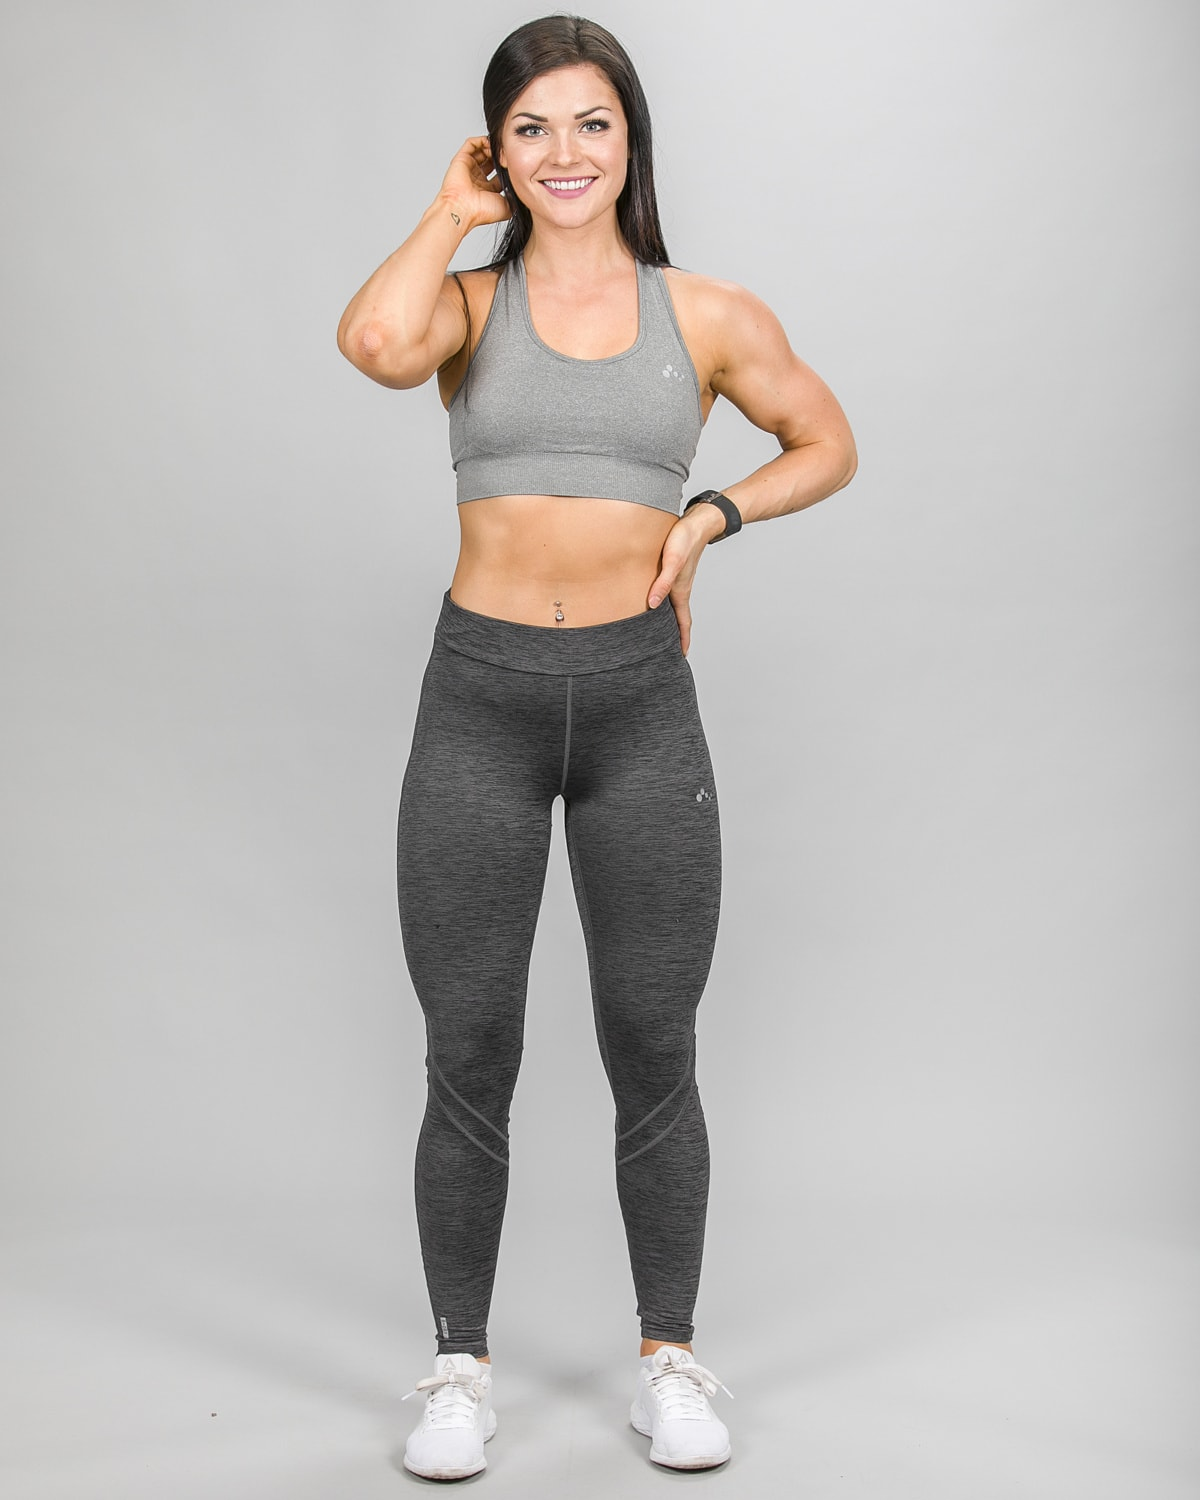 Only Play Staring Mesh Training Tights 15148847 and Daisy Bra 15101974